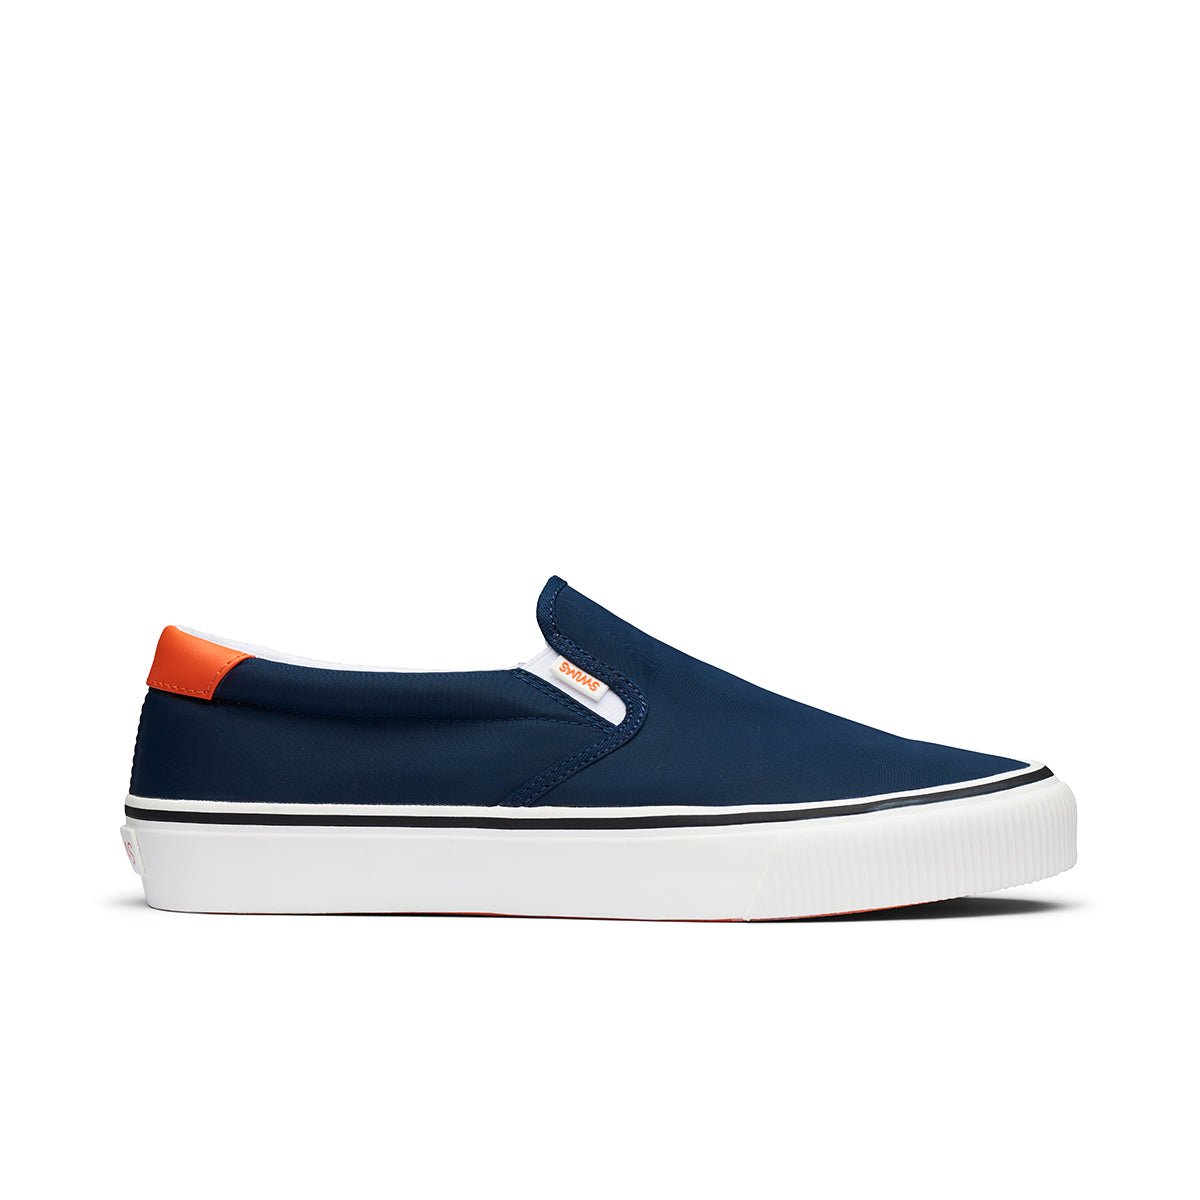 24Hr Slip On - background::white,variant::Navy/Orange/White